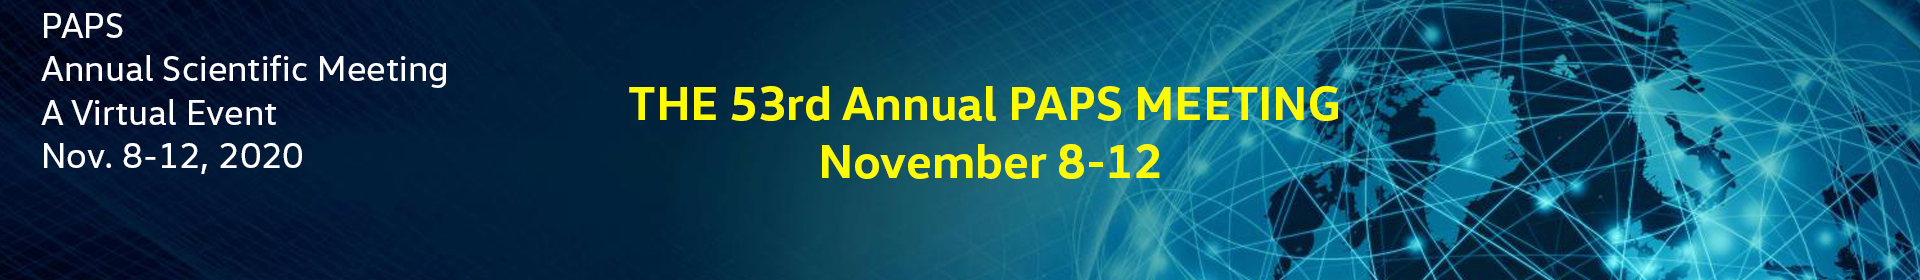 PAPS 2020 Event Banner